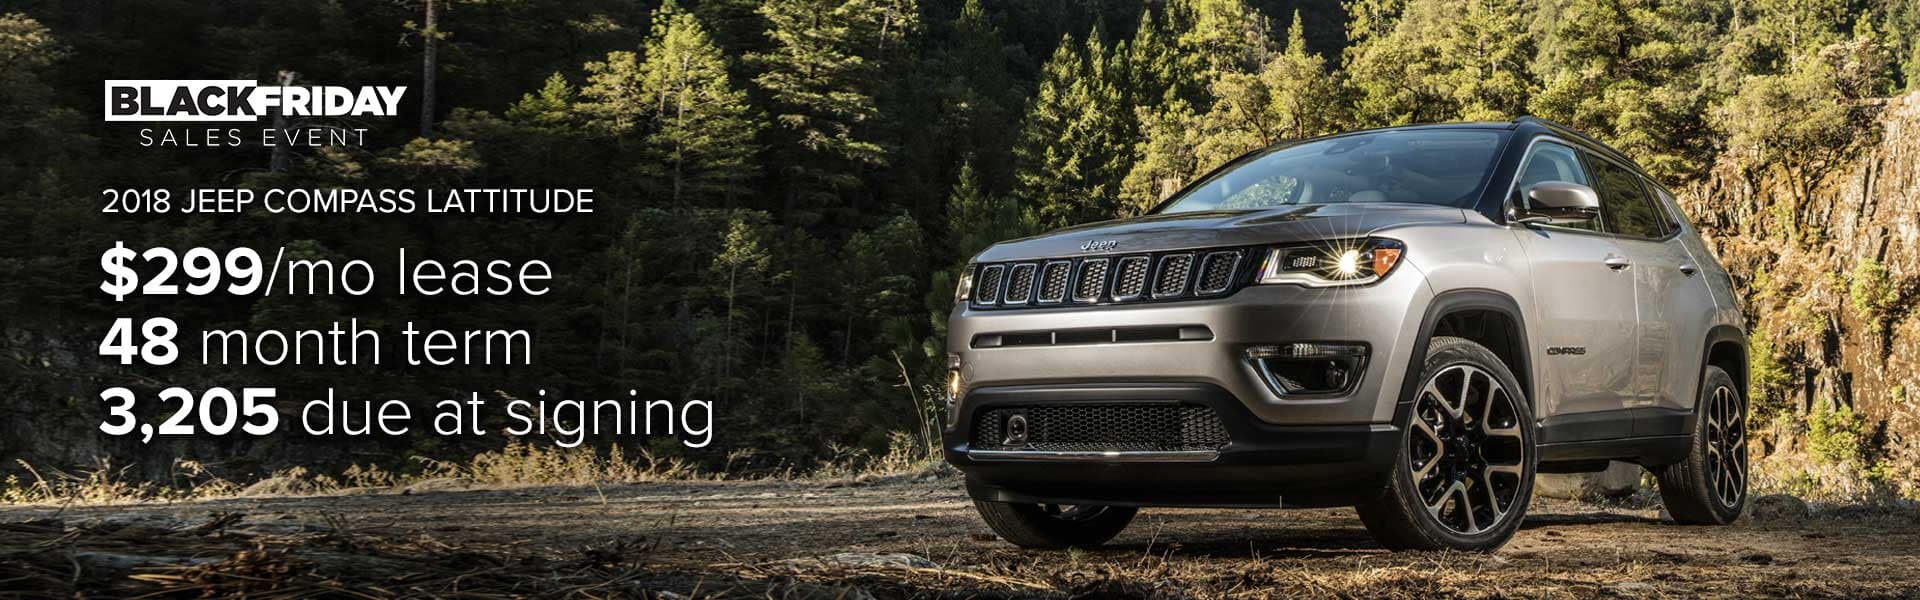 Lease a 2018 Jeep Compass for $299 per month!